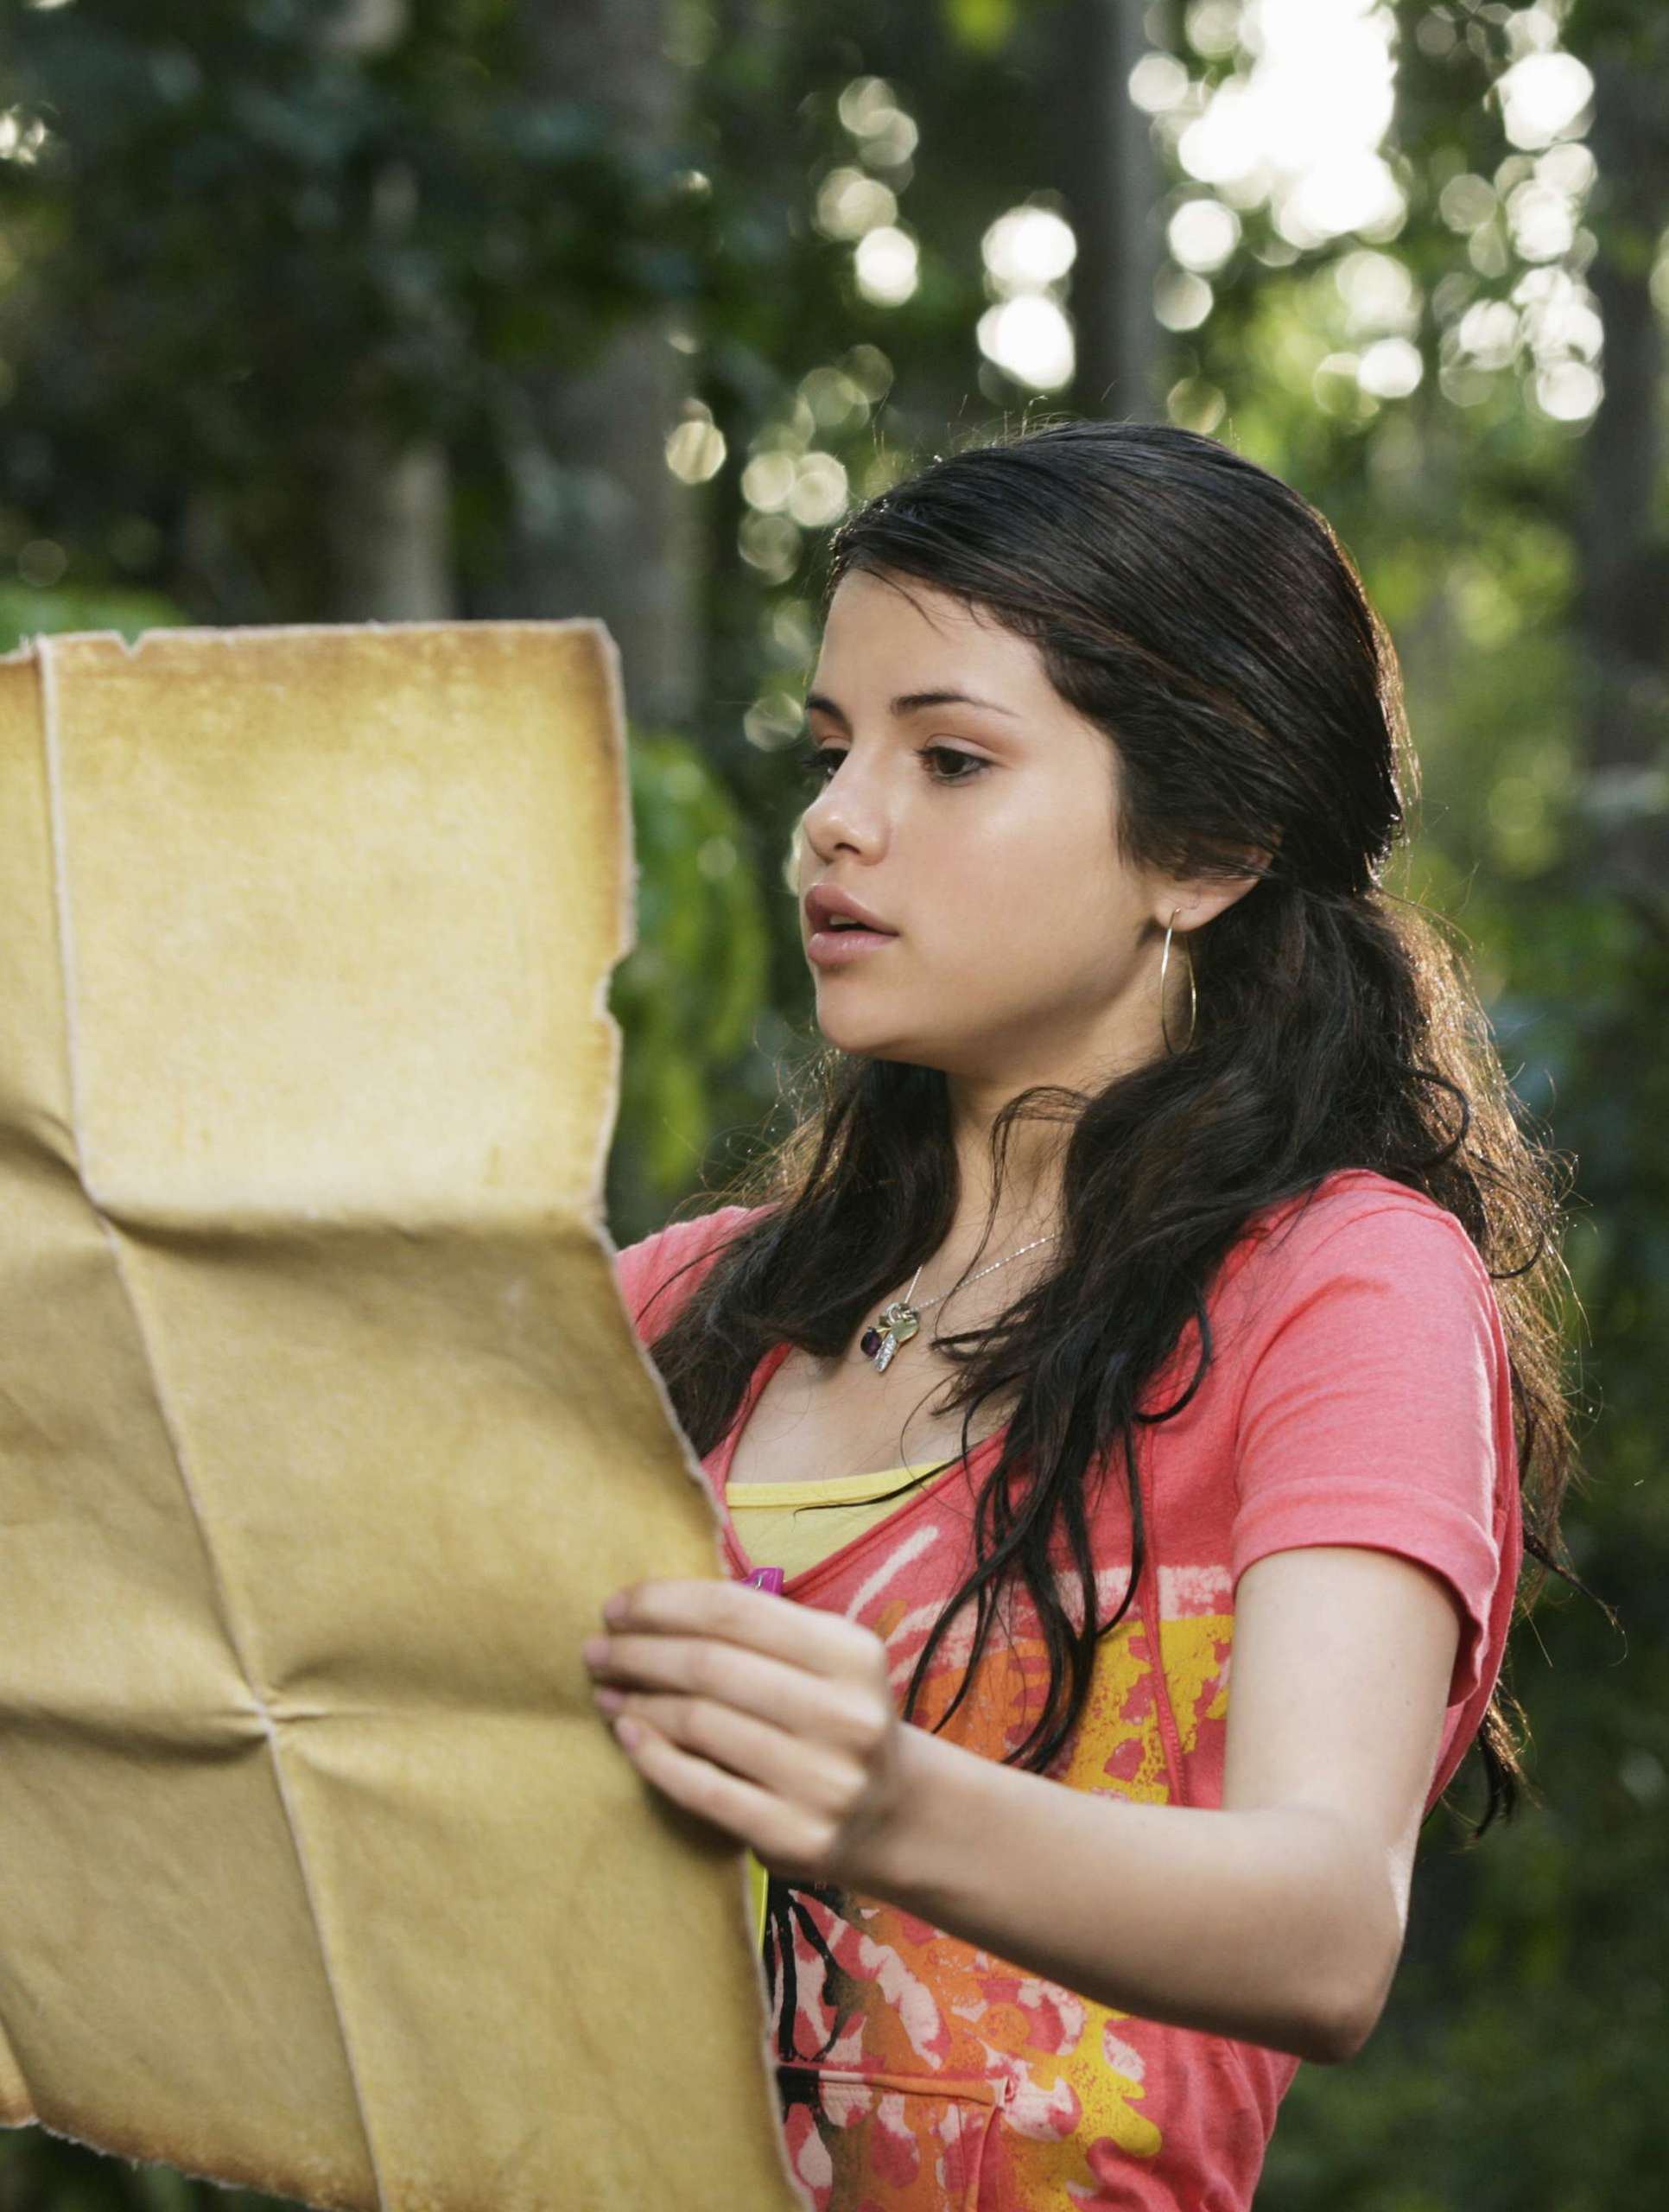 Selena gomez images wowp movie promos hd wallpaper and for The waverly